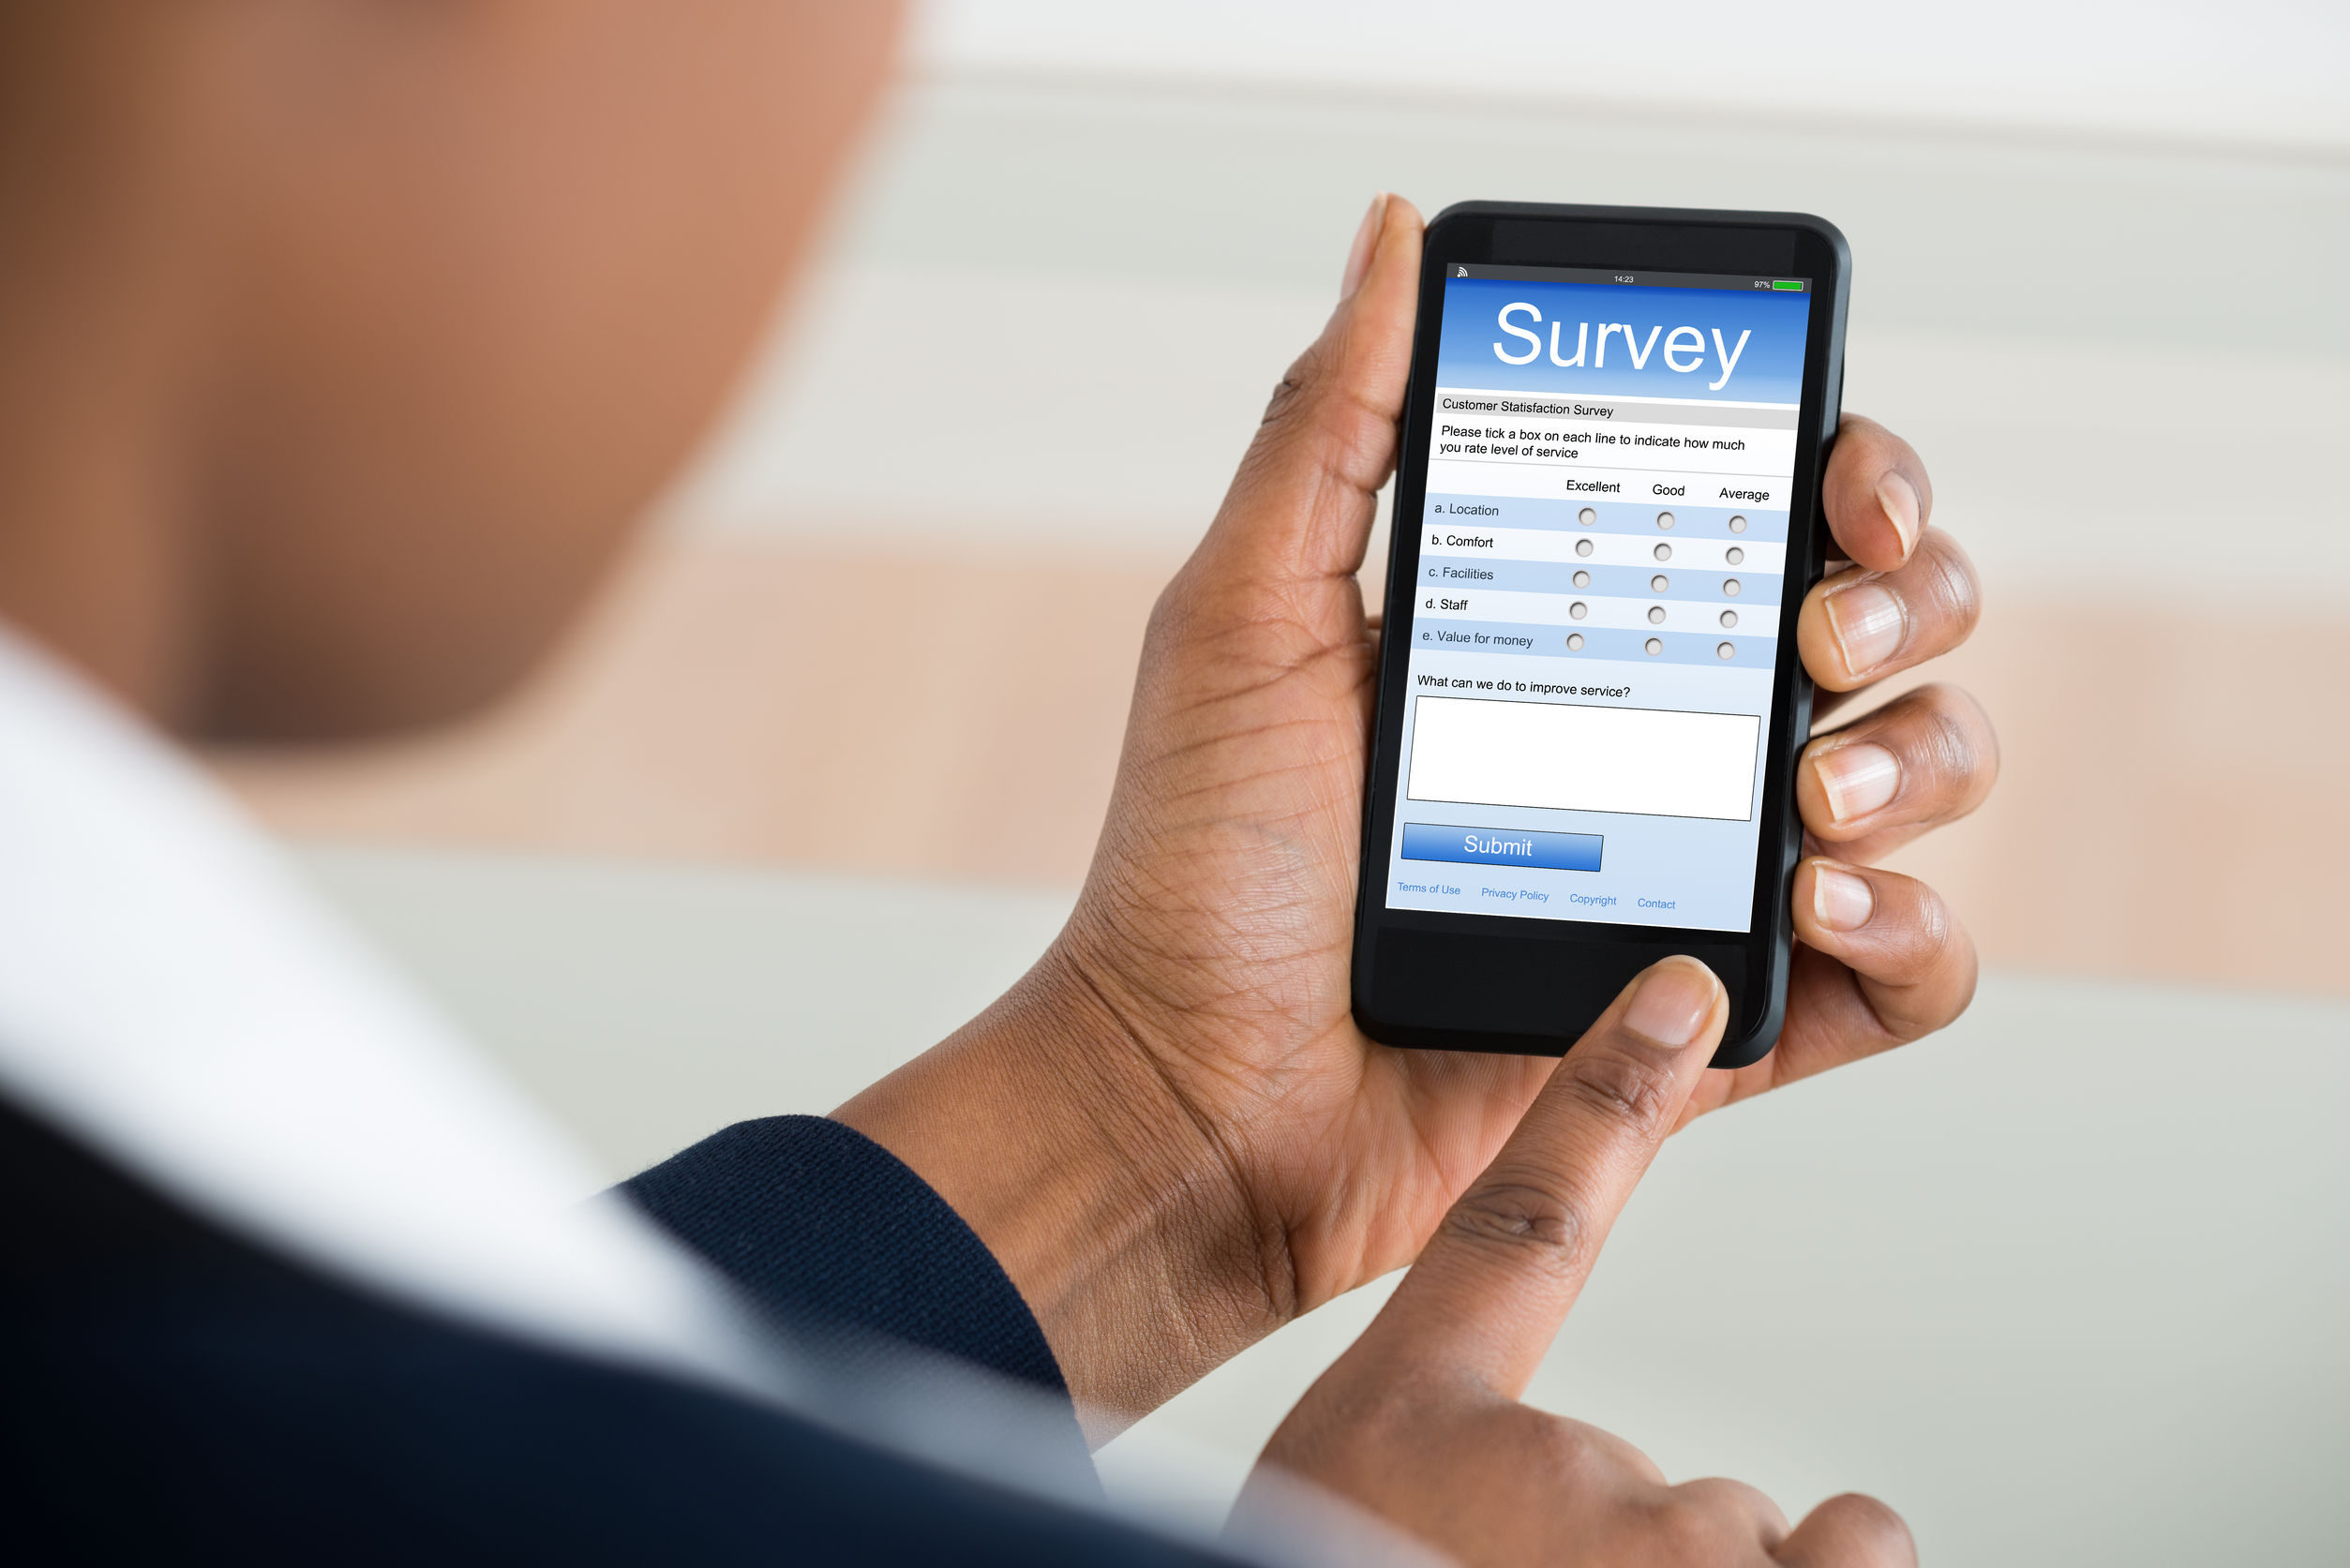 SMS Surveys To Improve Company Culture